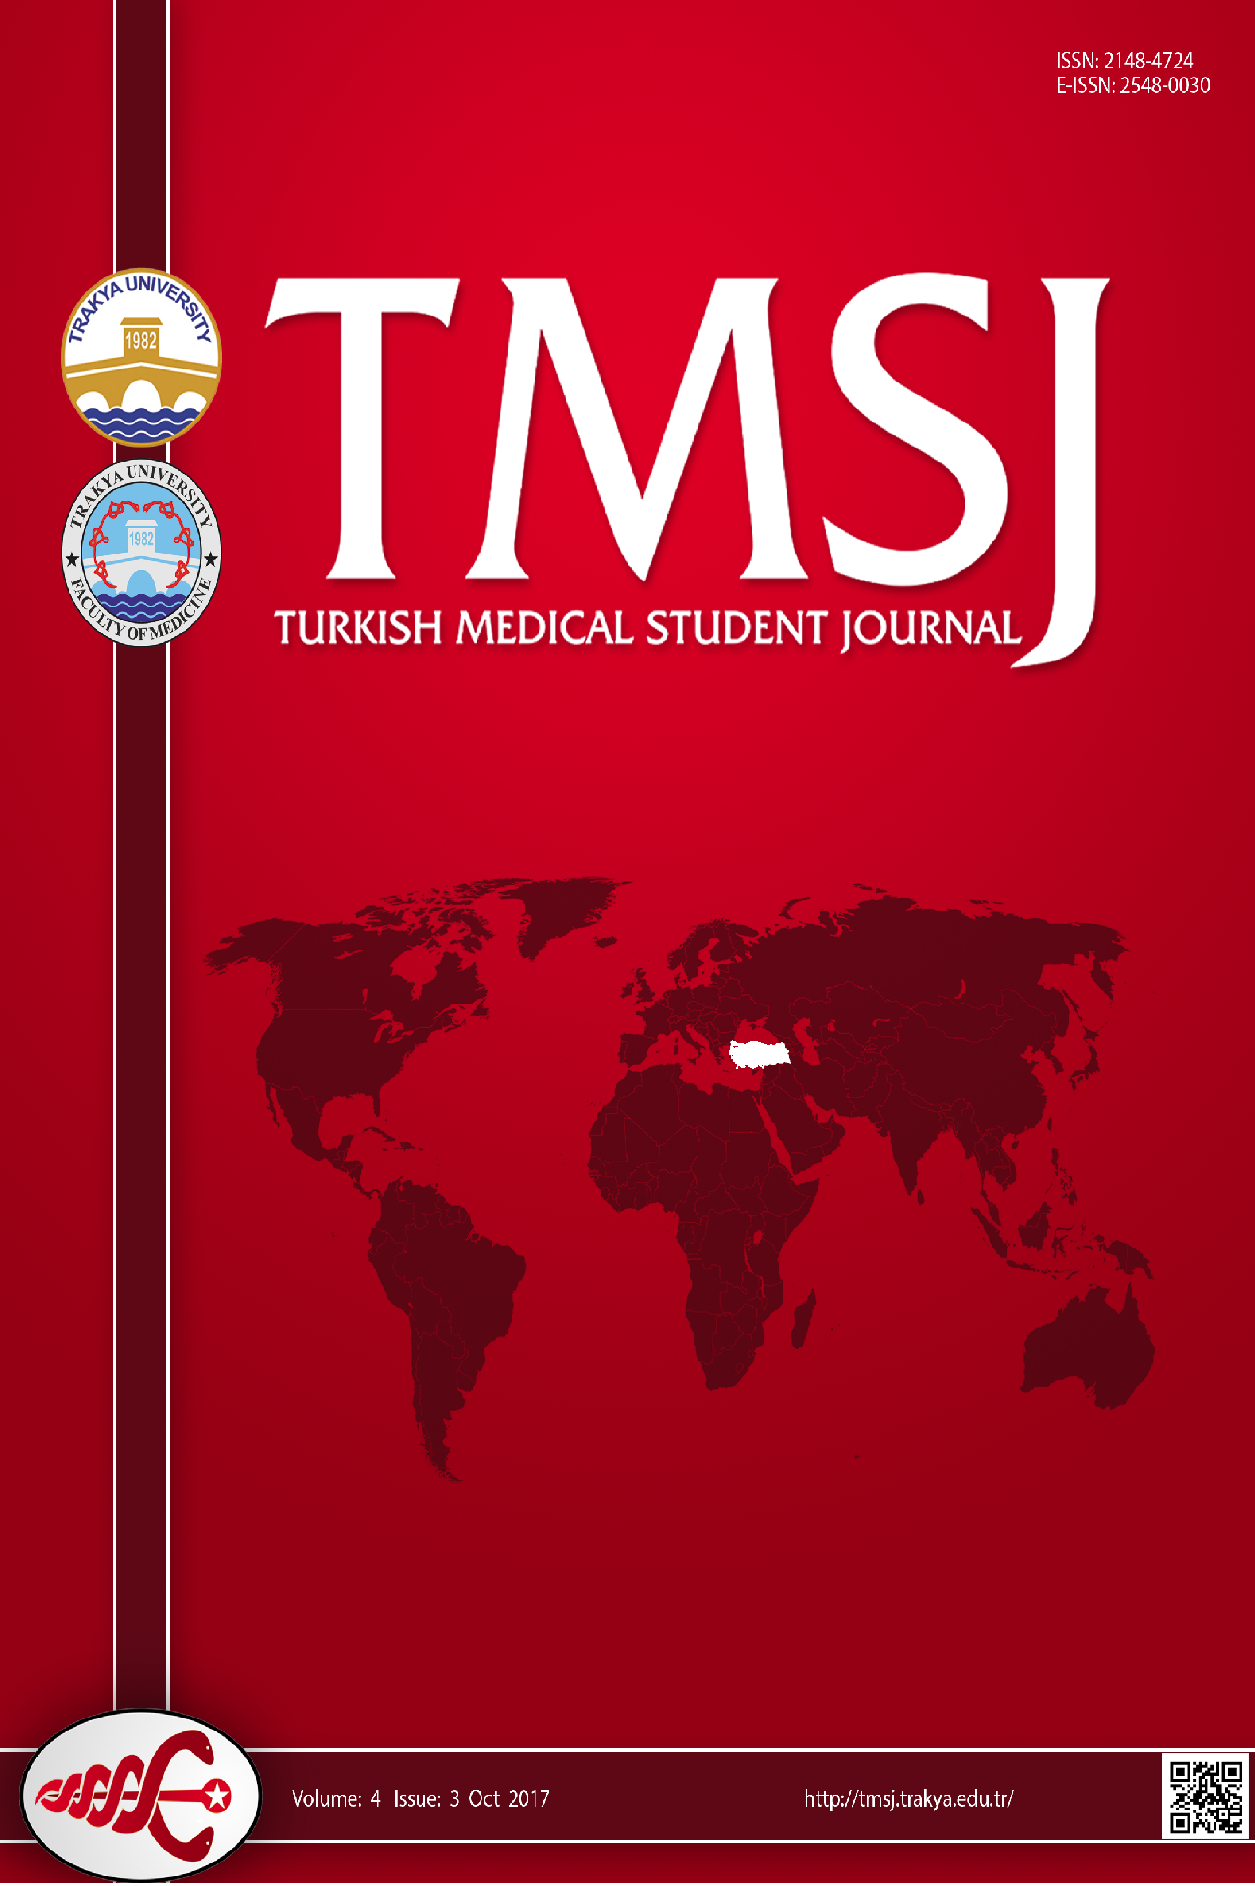 Turkish Medical Student Journal